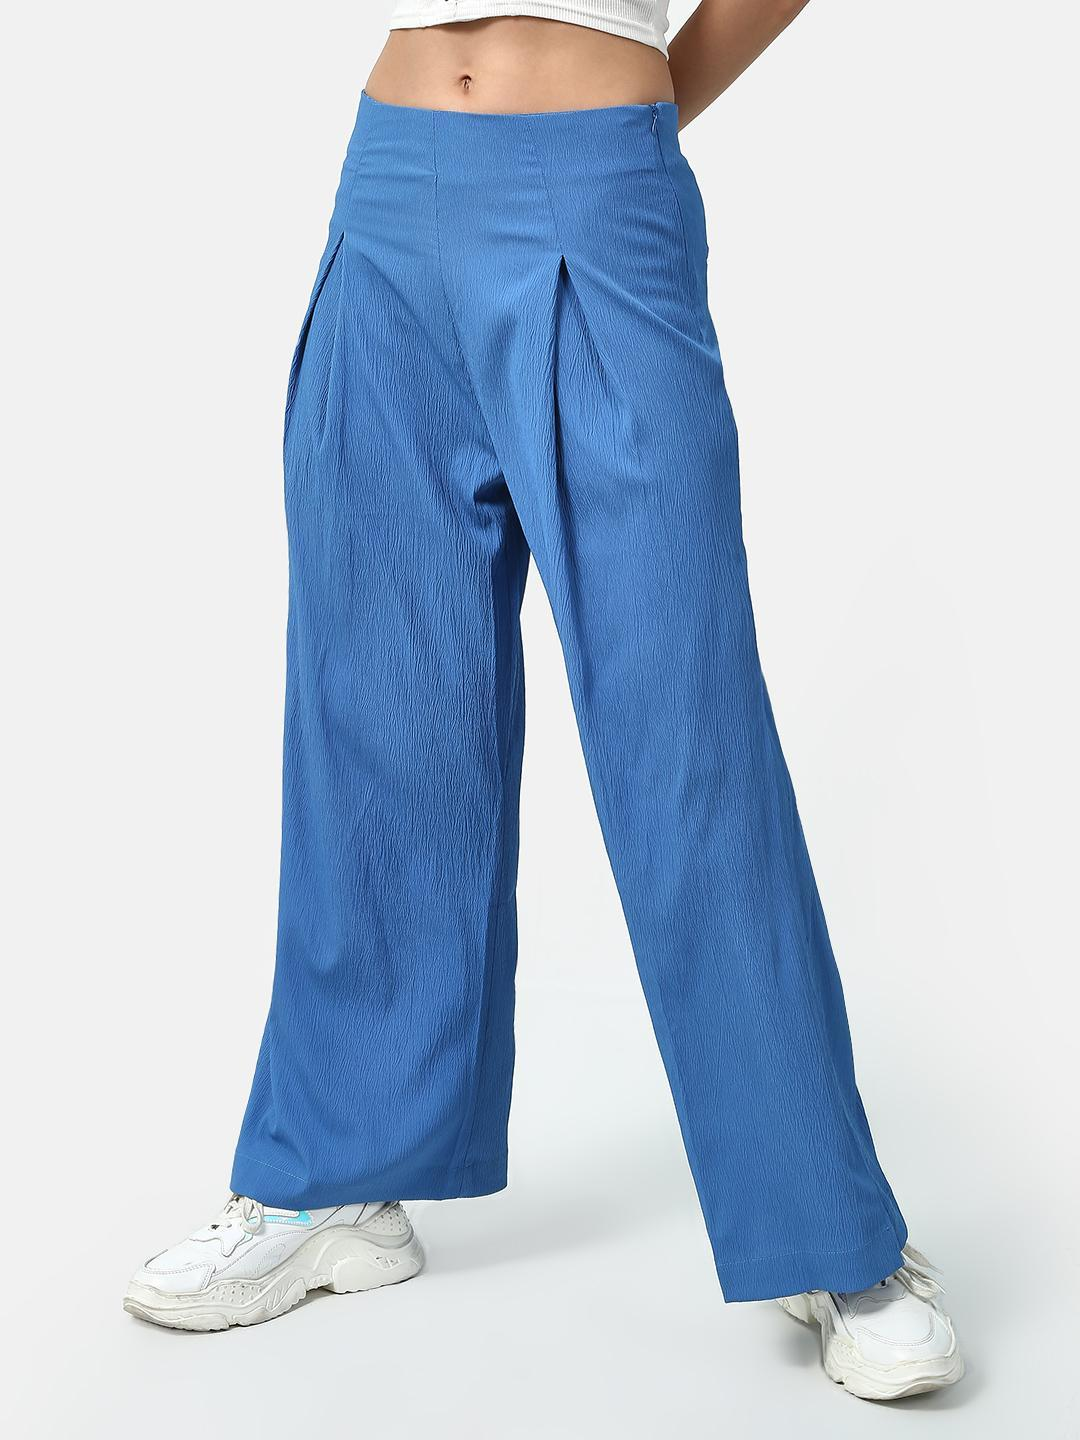 Oxolloxo Blue Solid Color Palazzo Pants 1